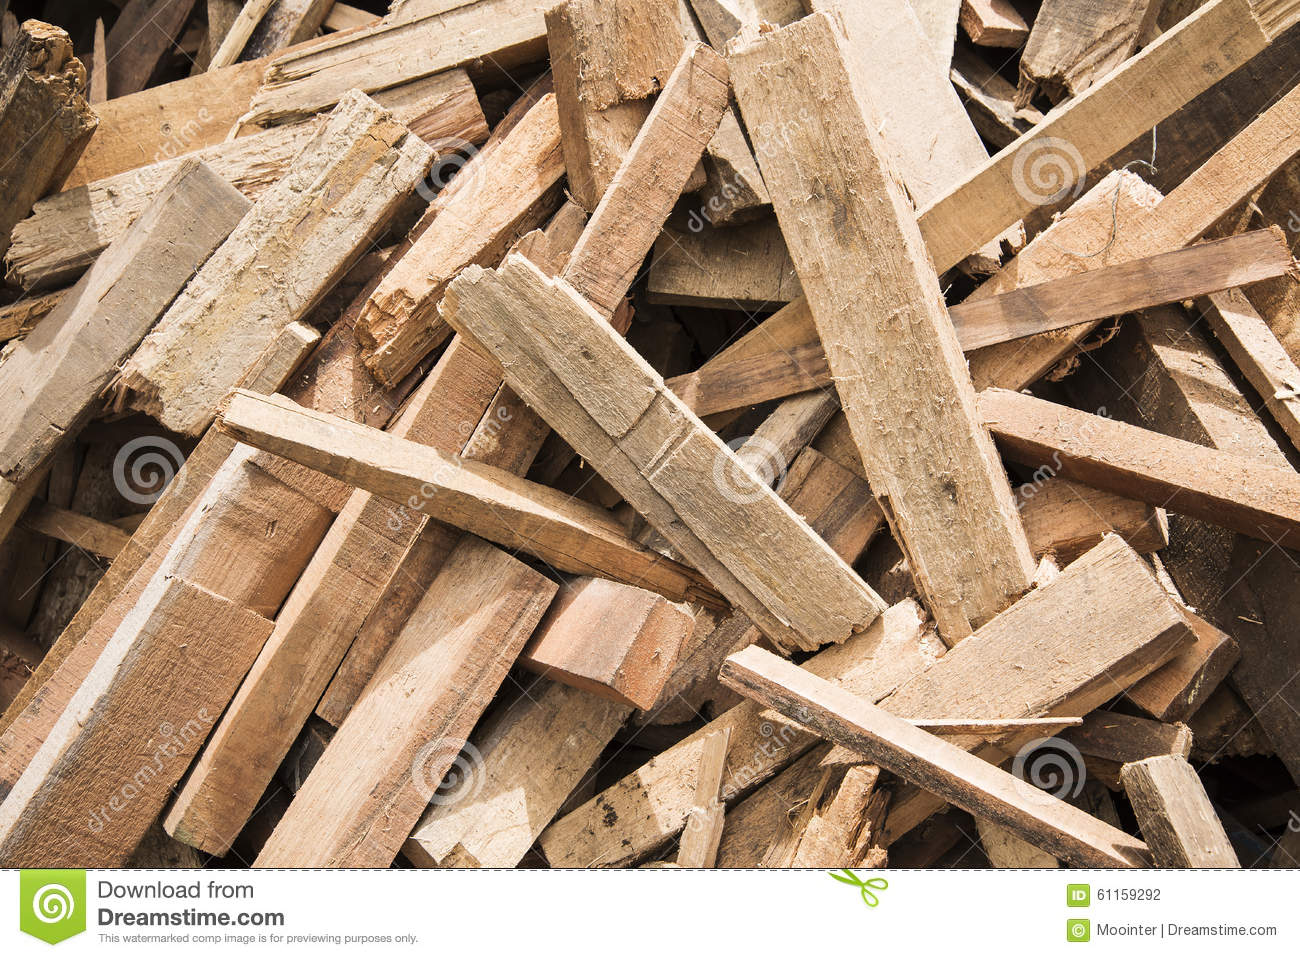 sew wood scraps stock image image of discard building 40201355